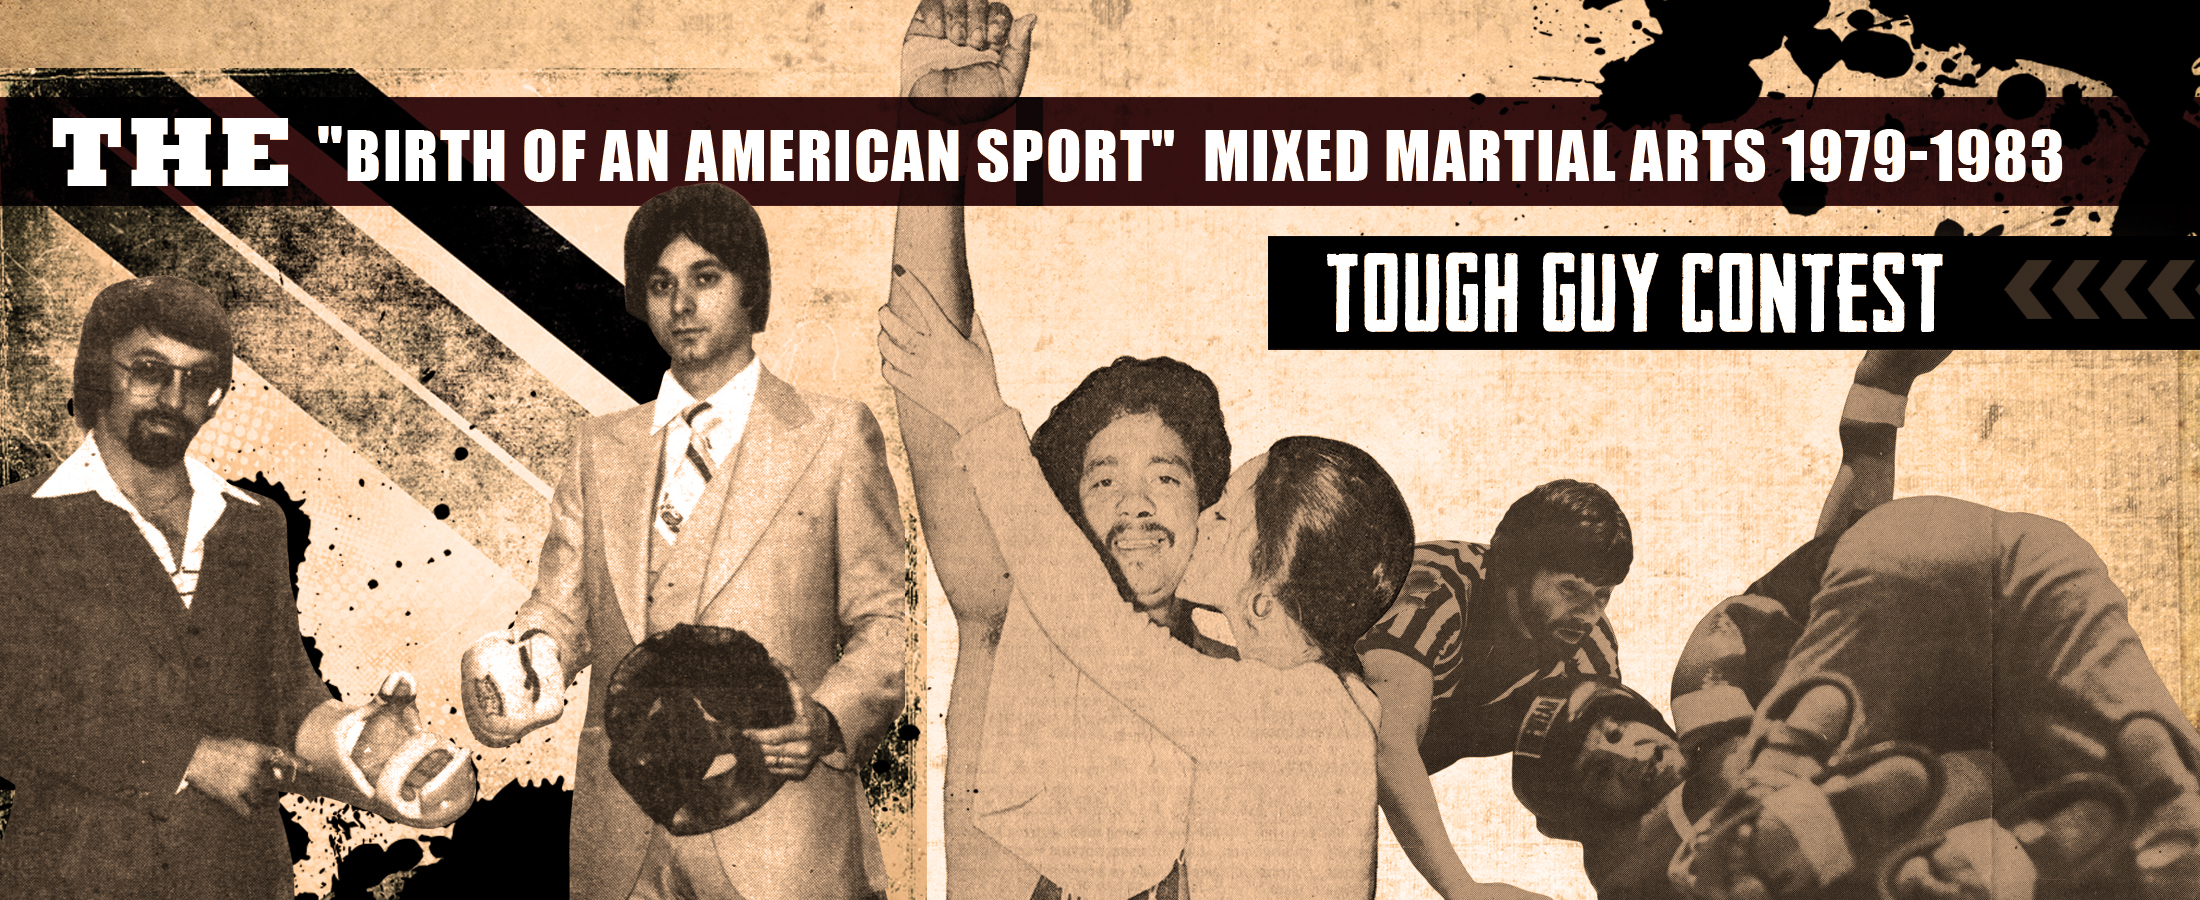 tough guy contest banner